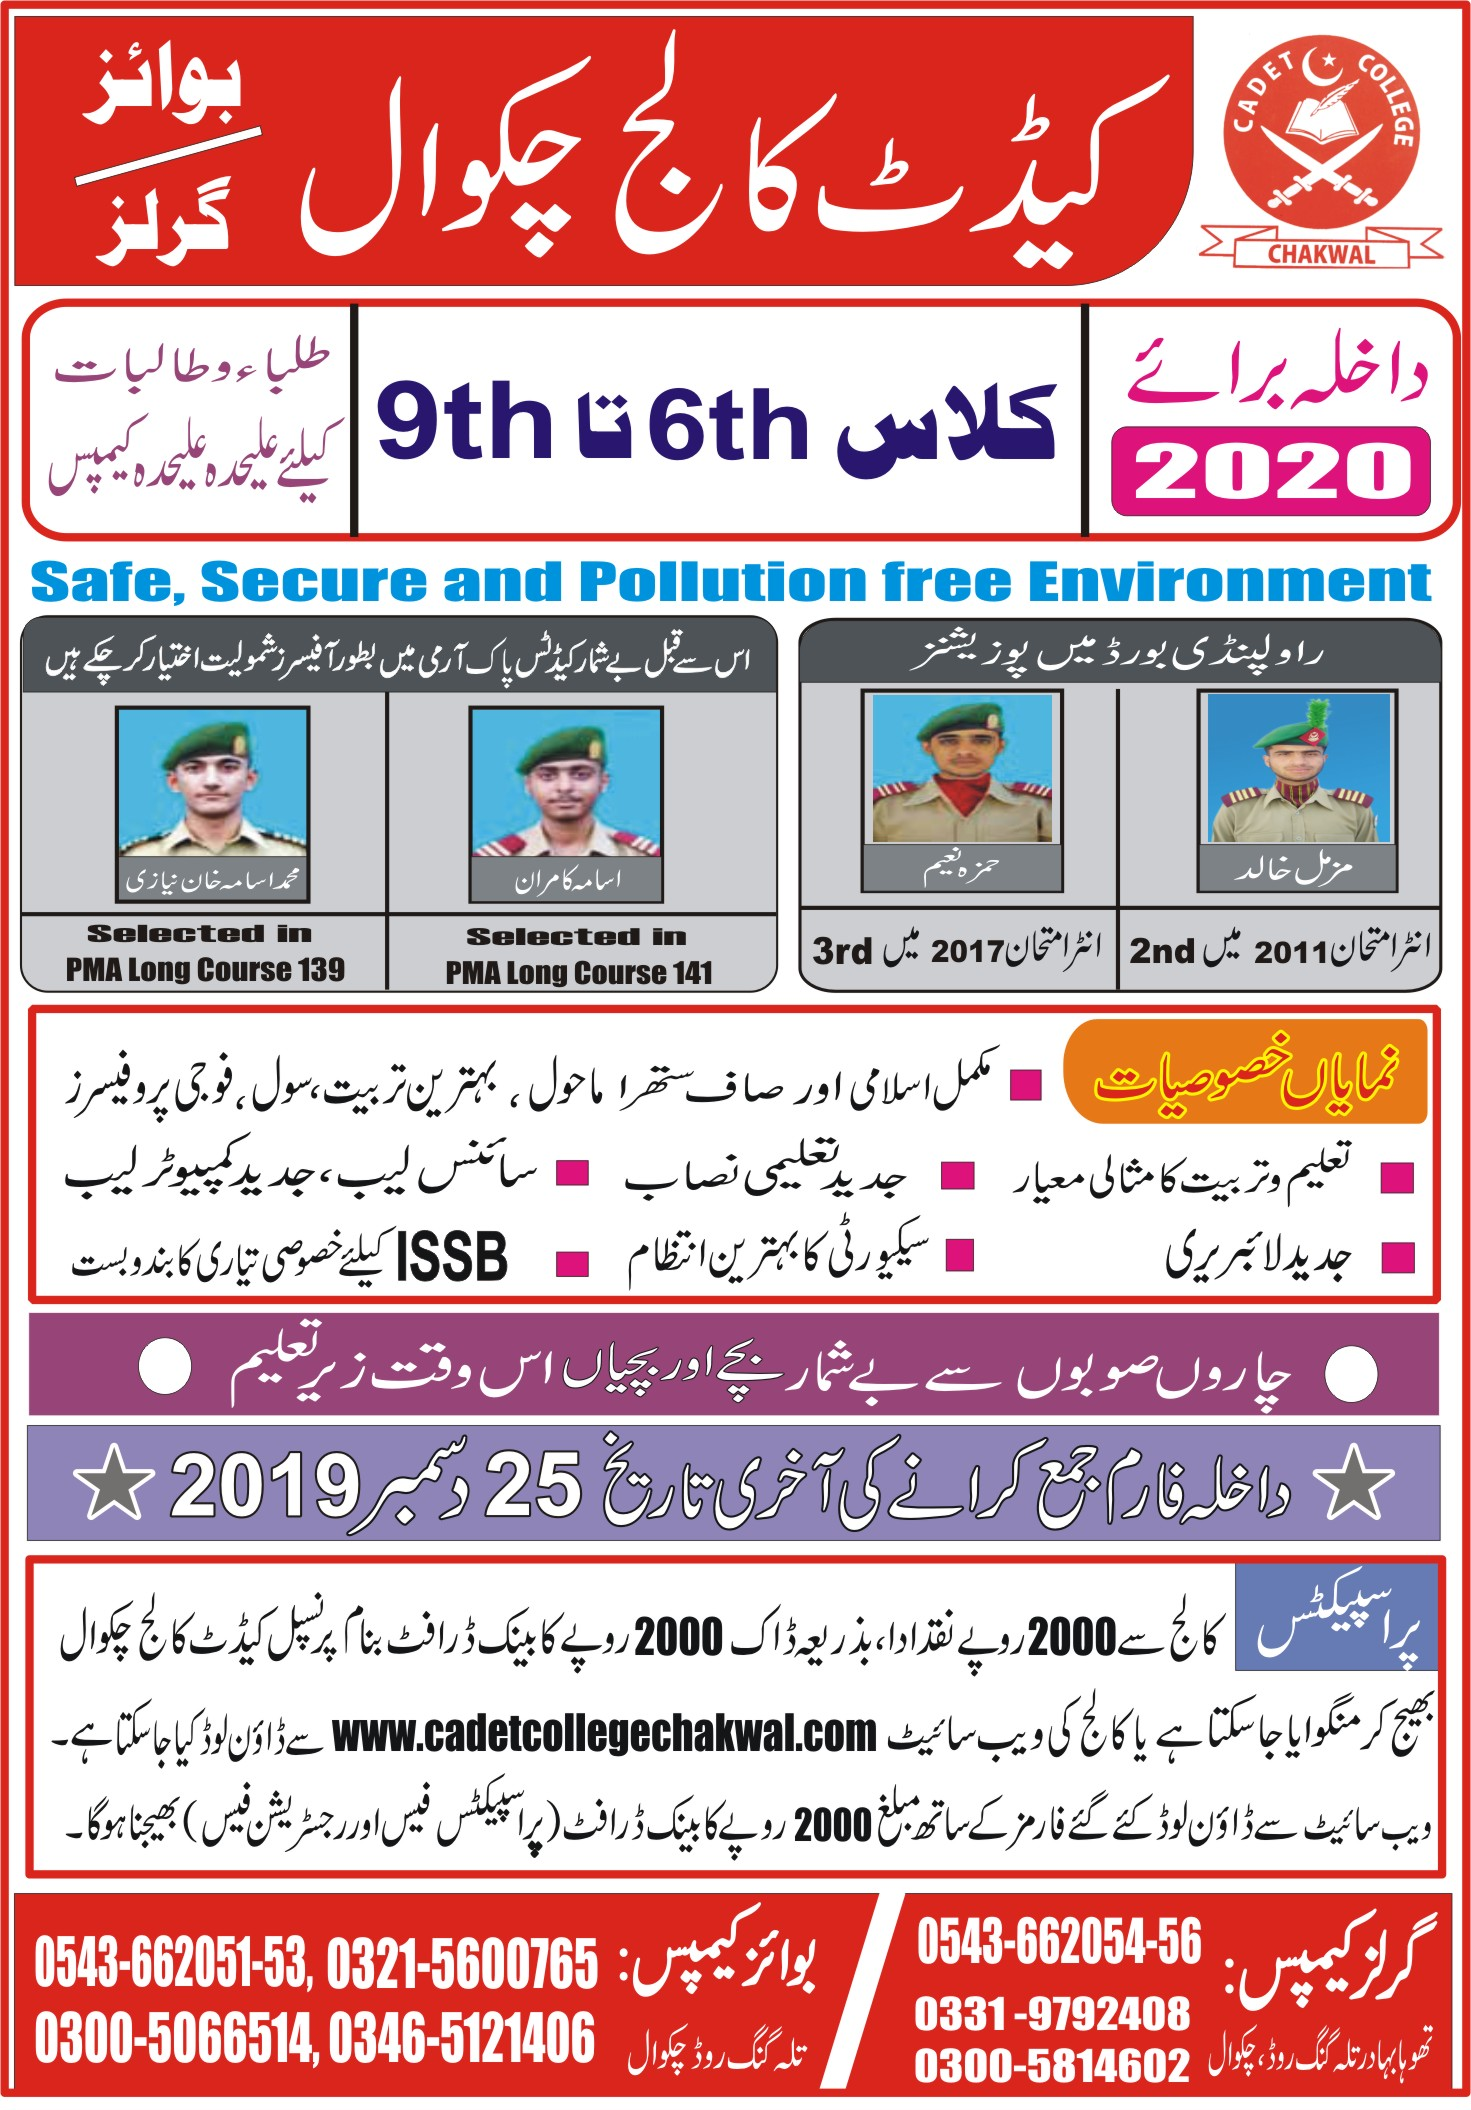 Cadet College Chakwal Admissions 2020 Online Application Form, Fee Structure